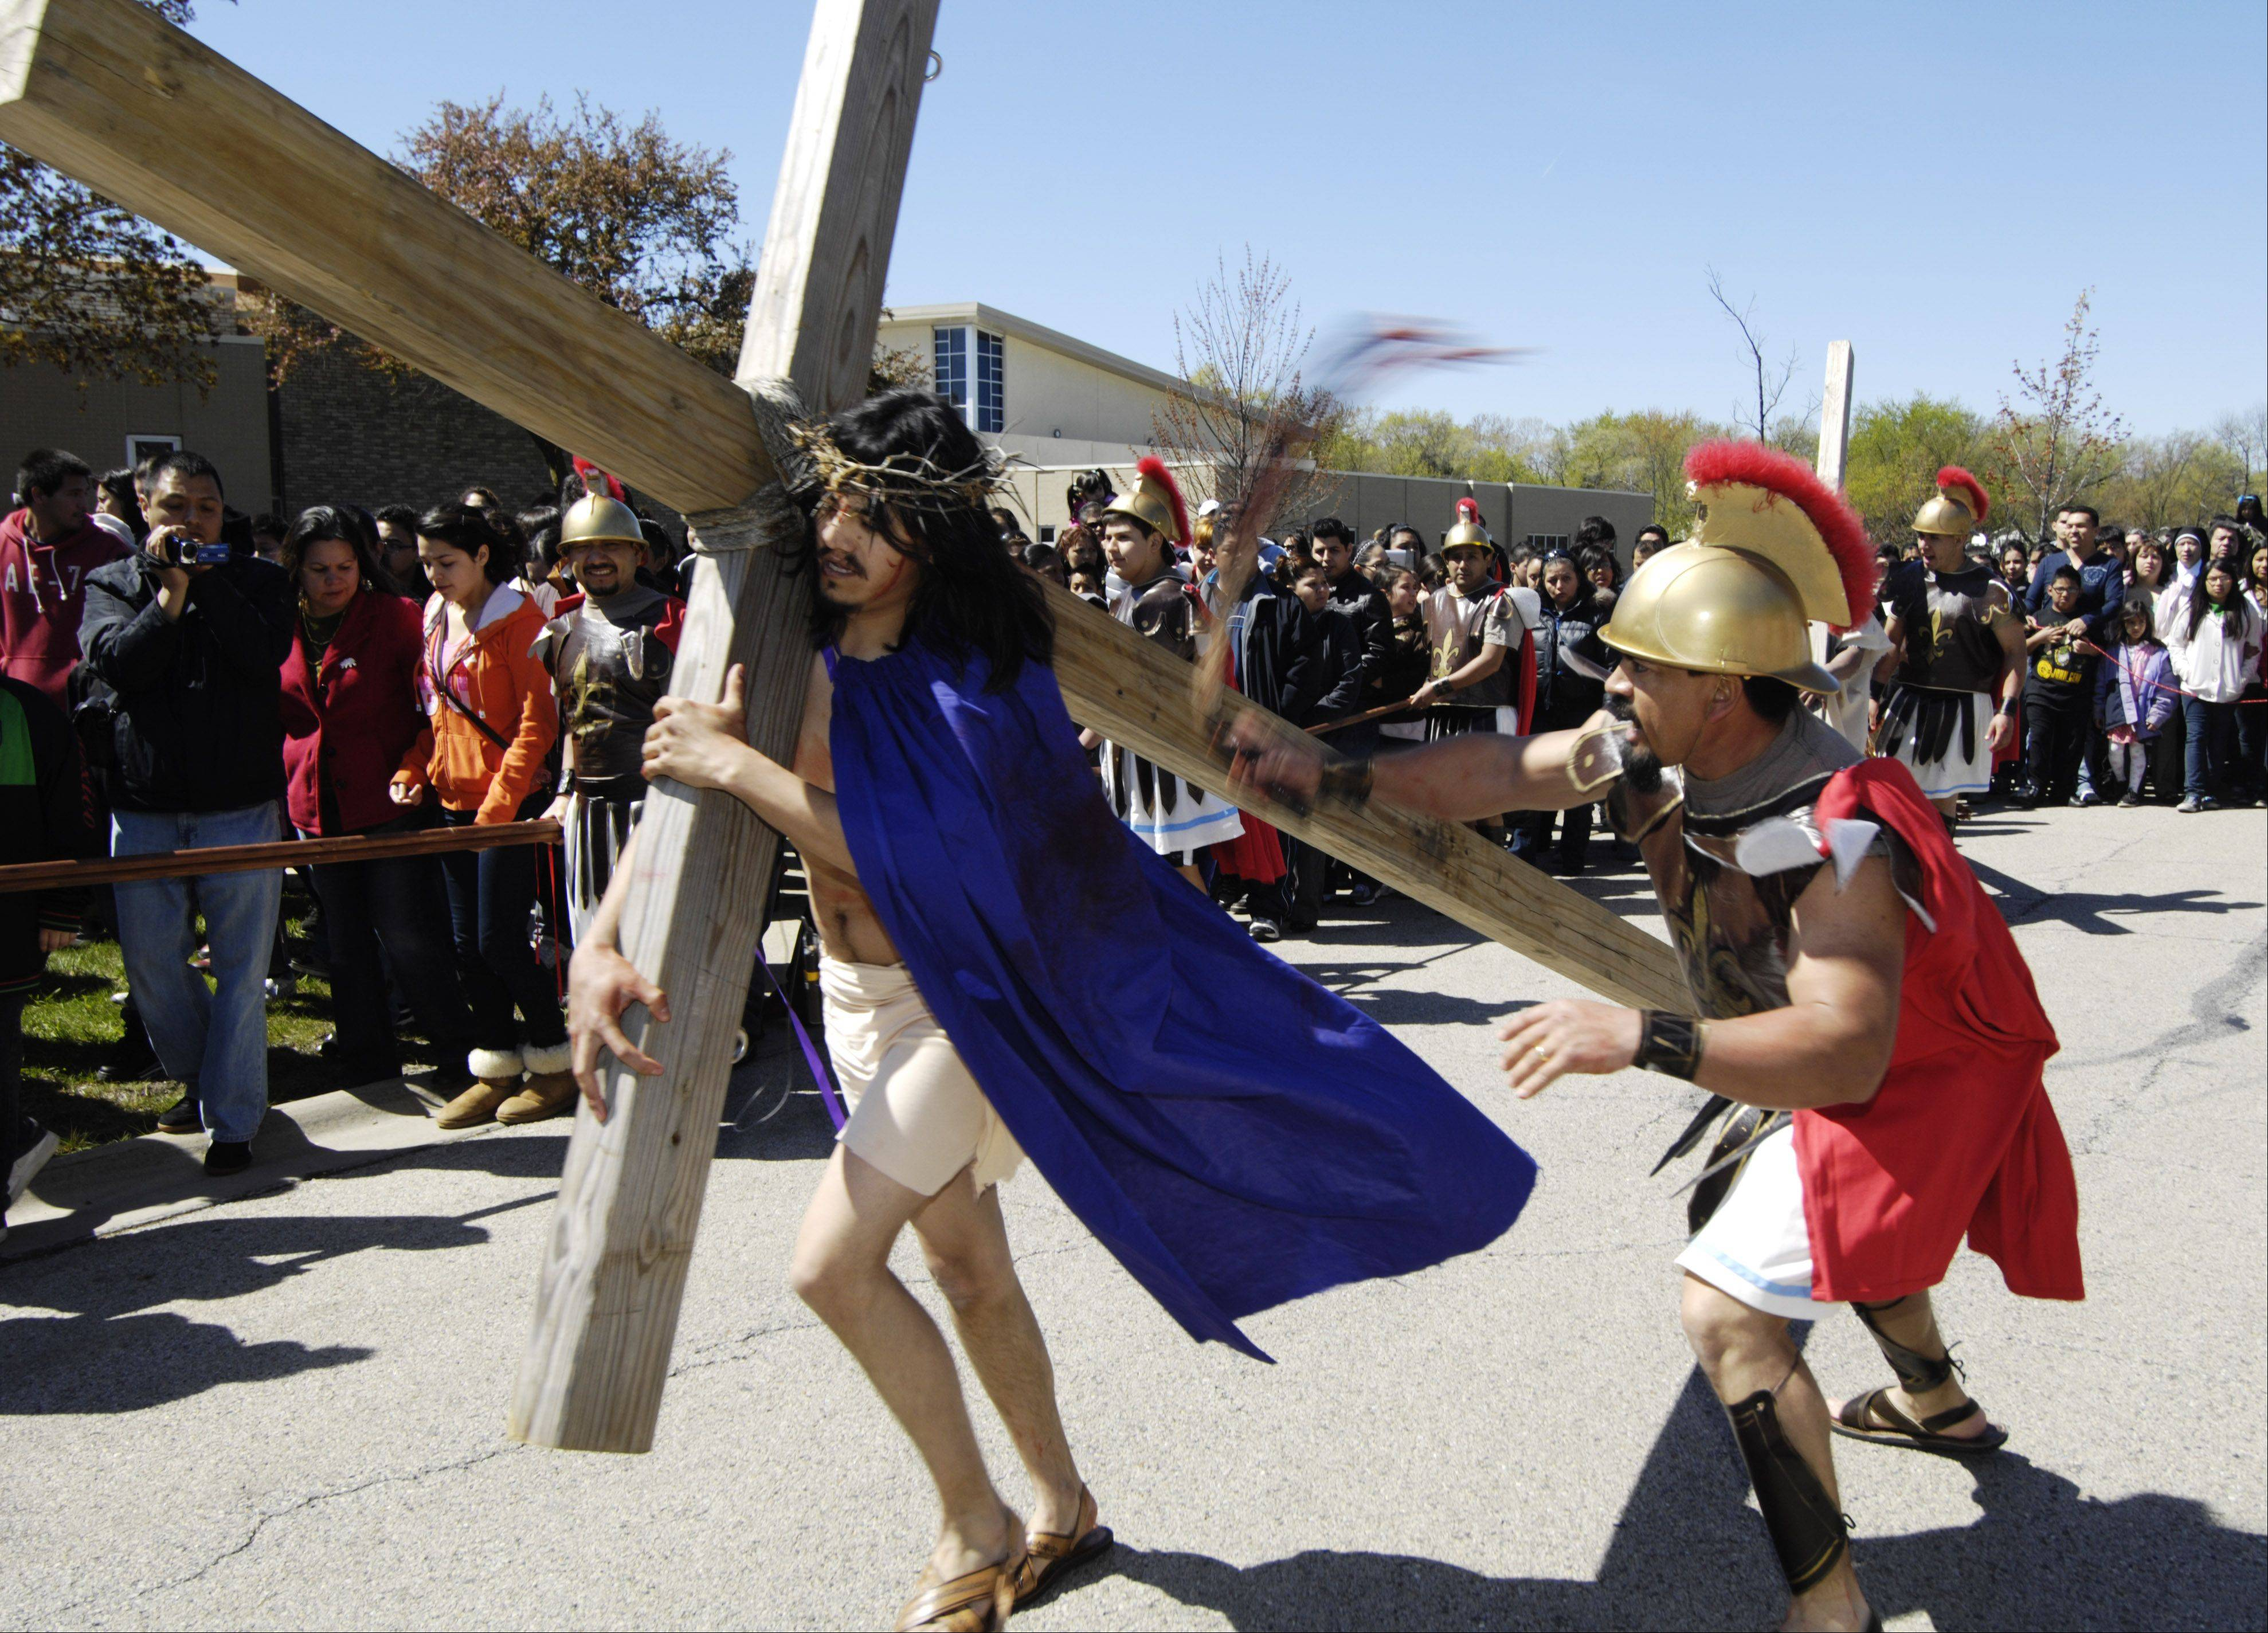 Churches celebrate Good Friday with passion